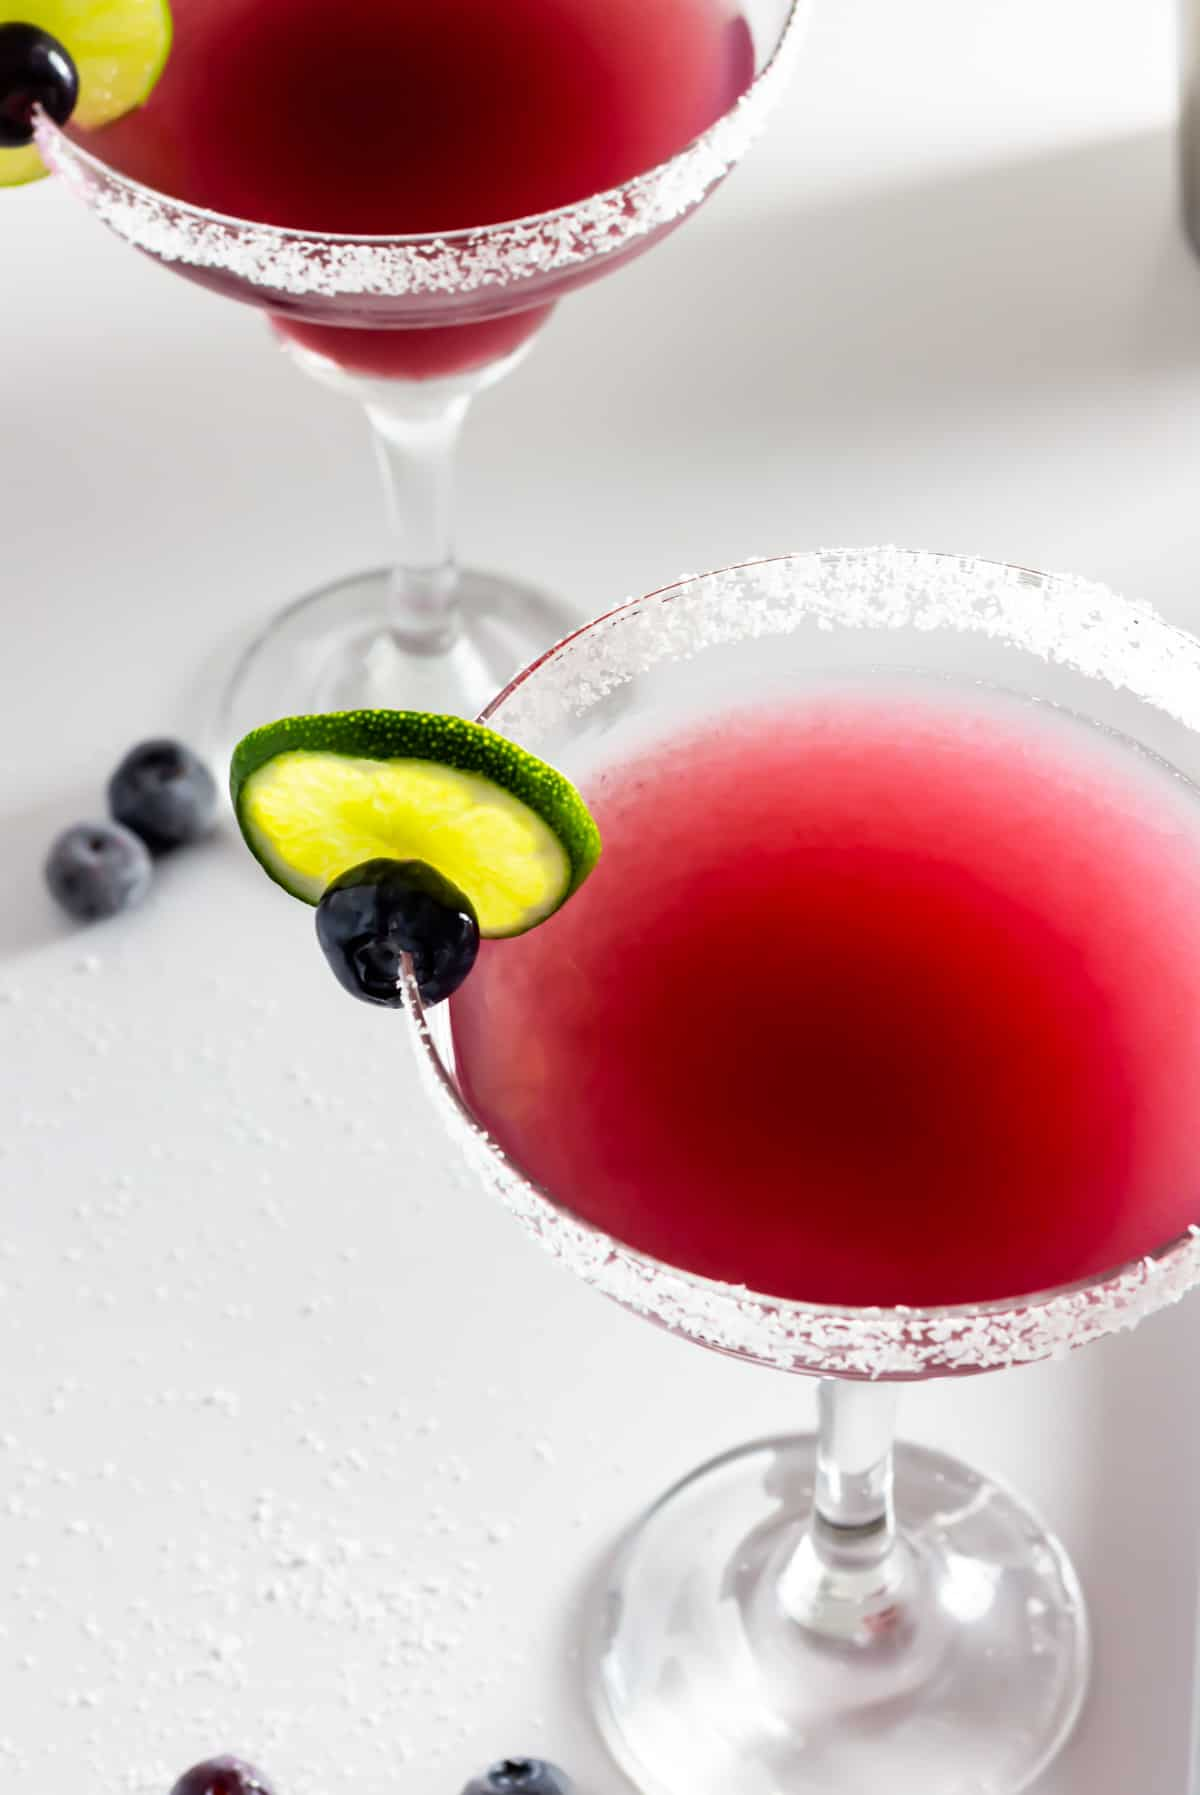 Looking down on two blueberry margaritas garnished with a lime wheel and a blueberry.